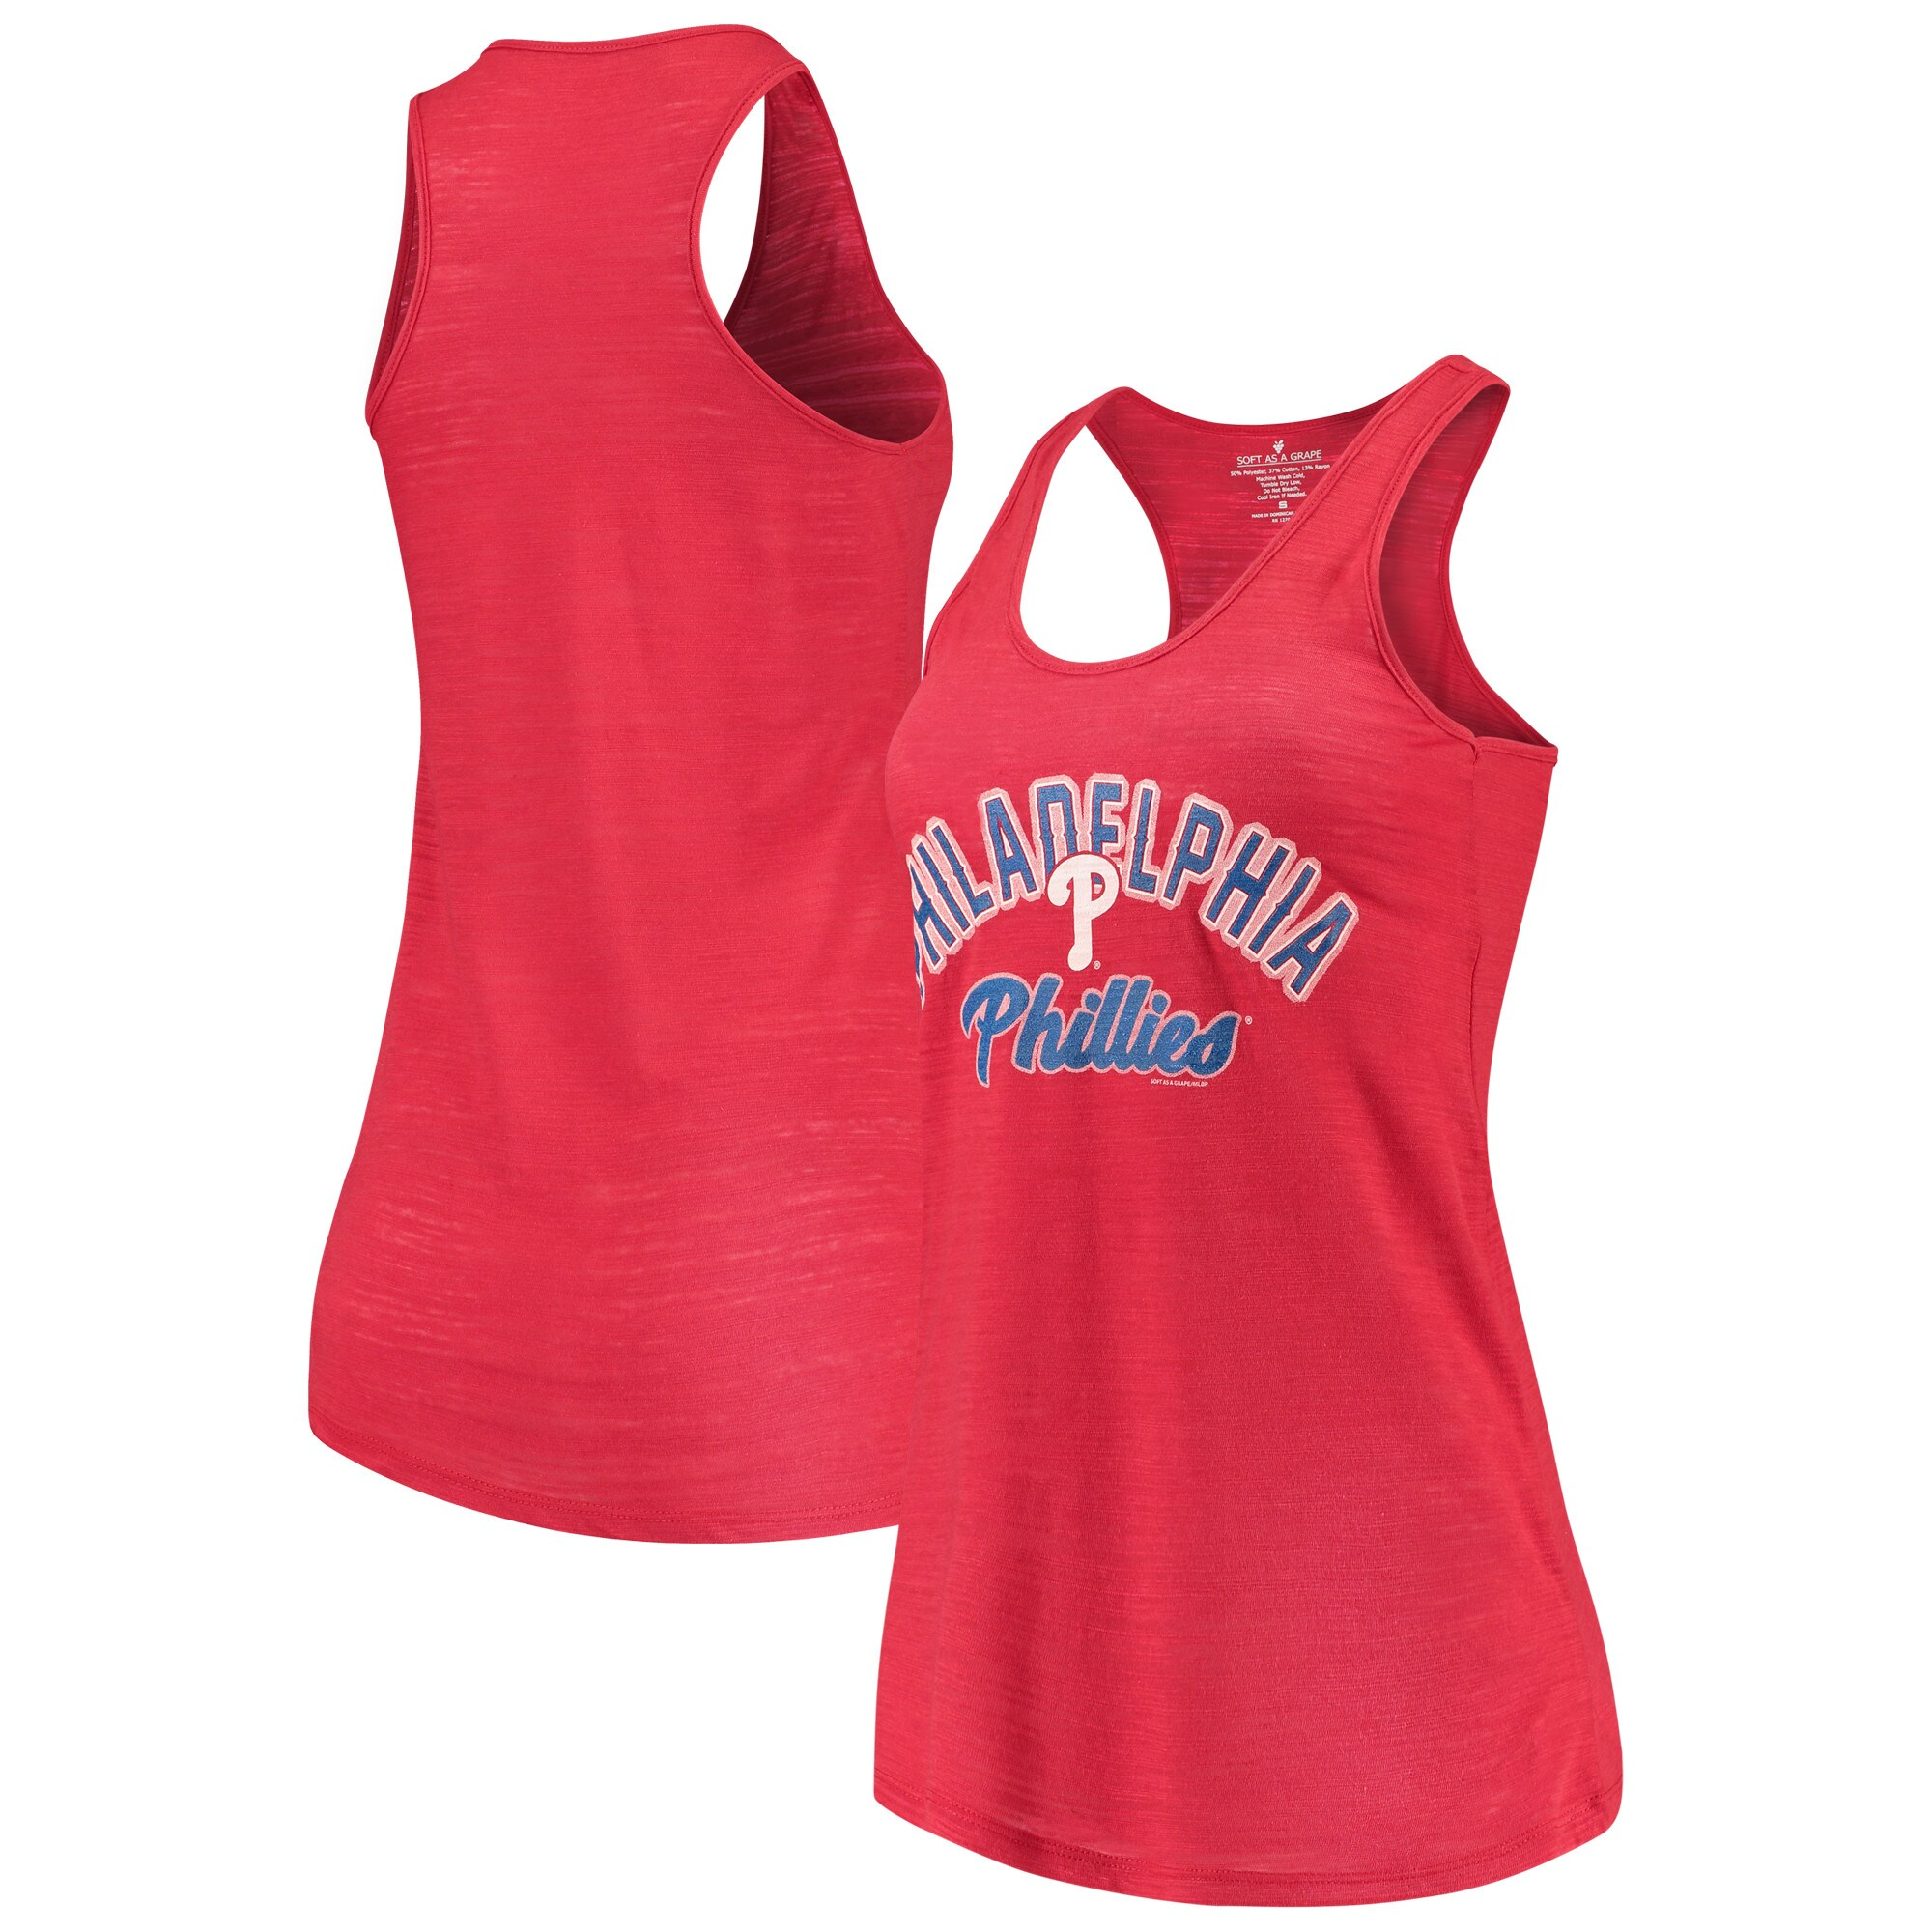 Philadelphia Phillies Soft as a Grape Women's Multicount Racerback Tank Top - Red